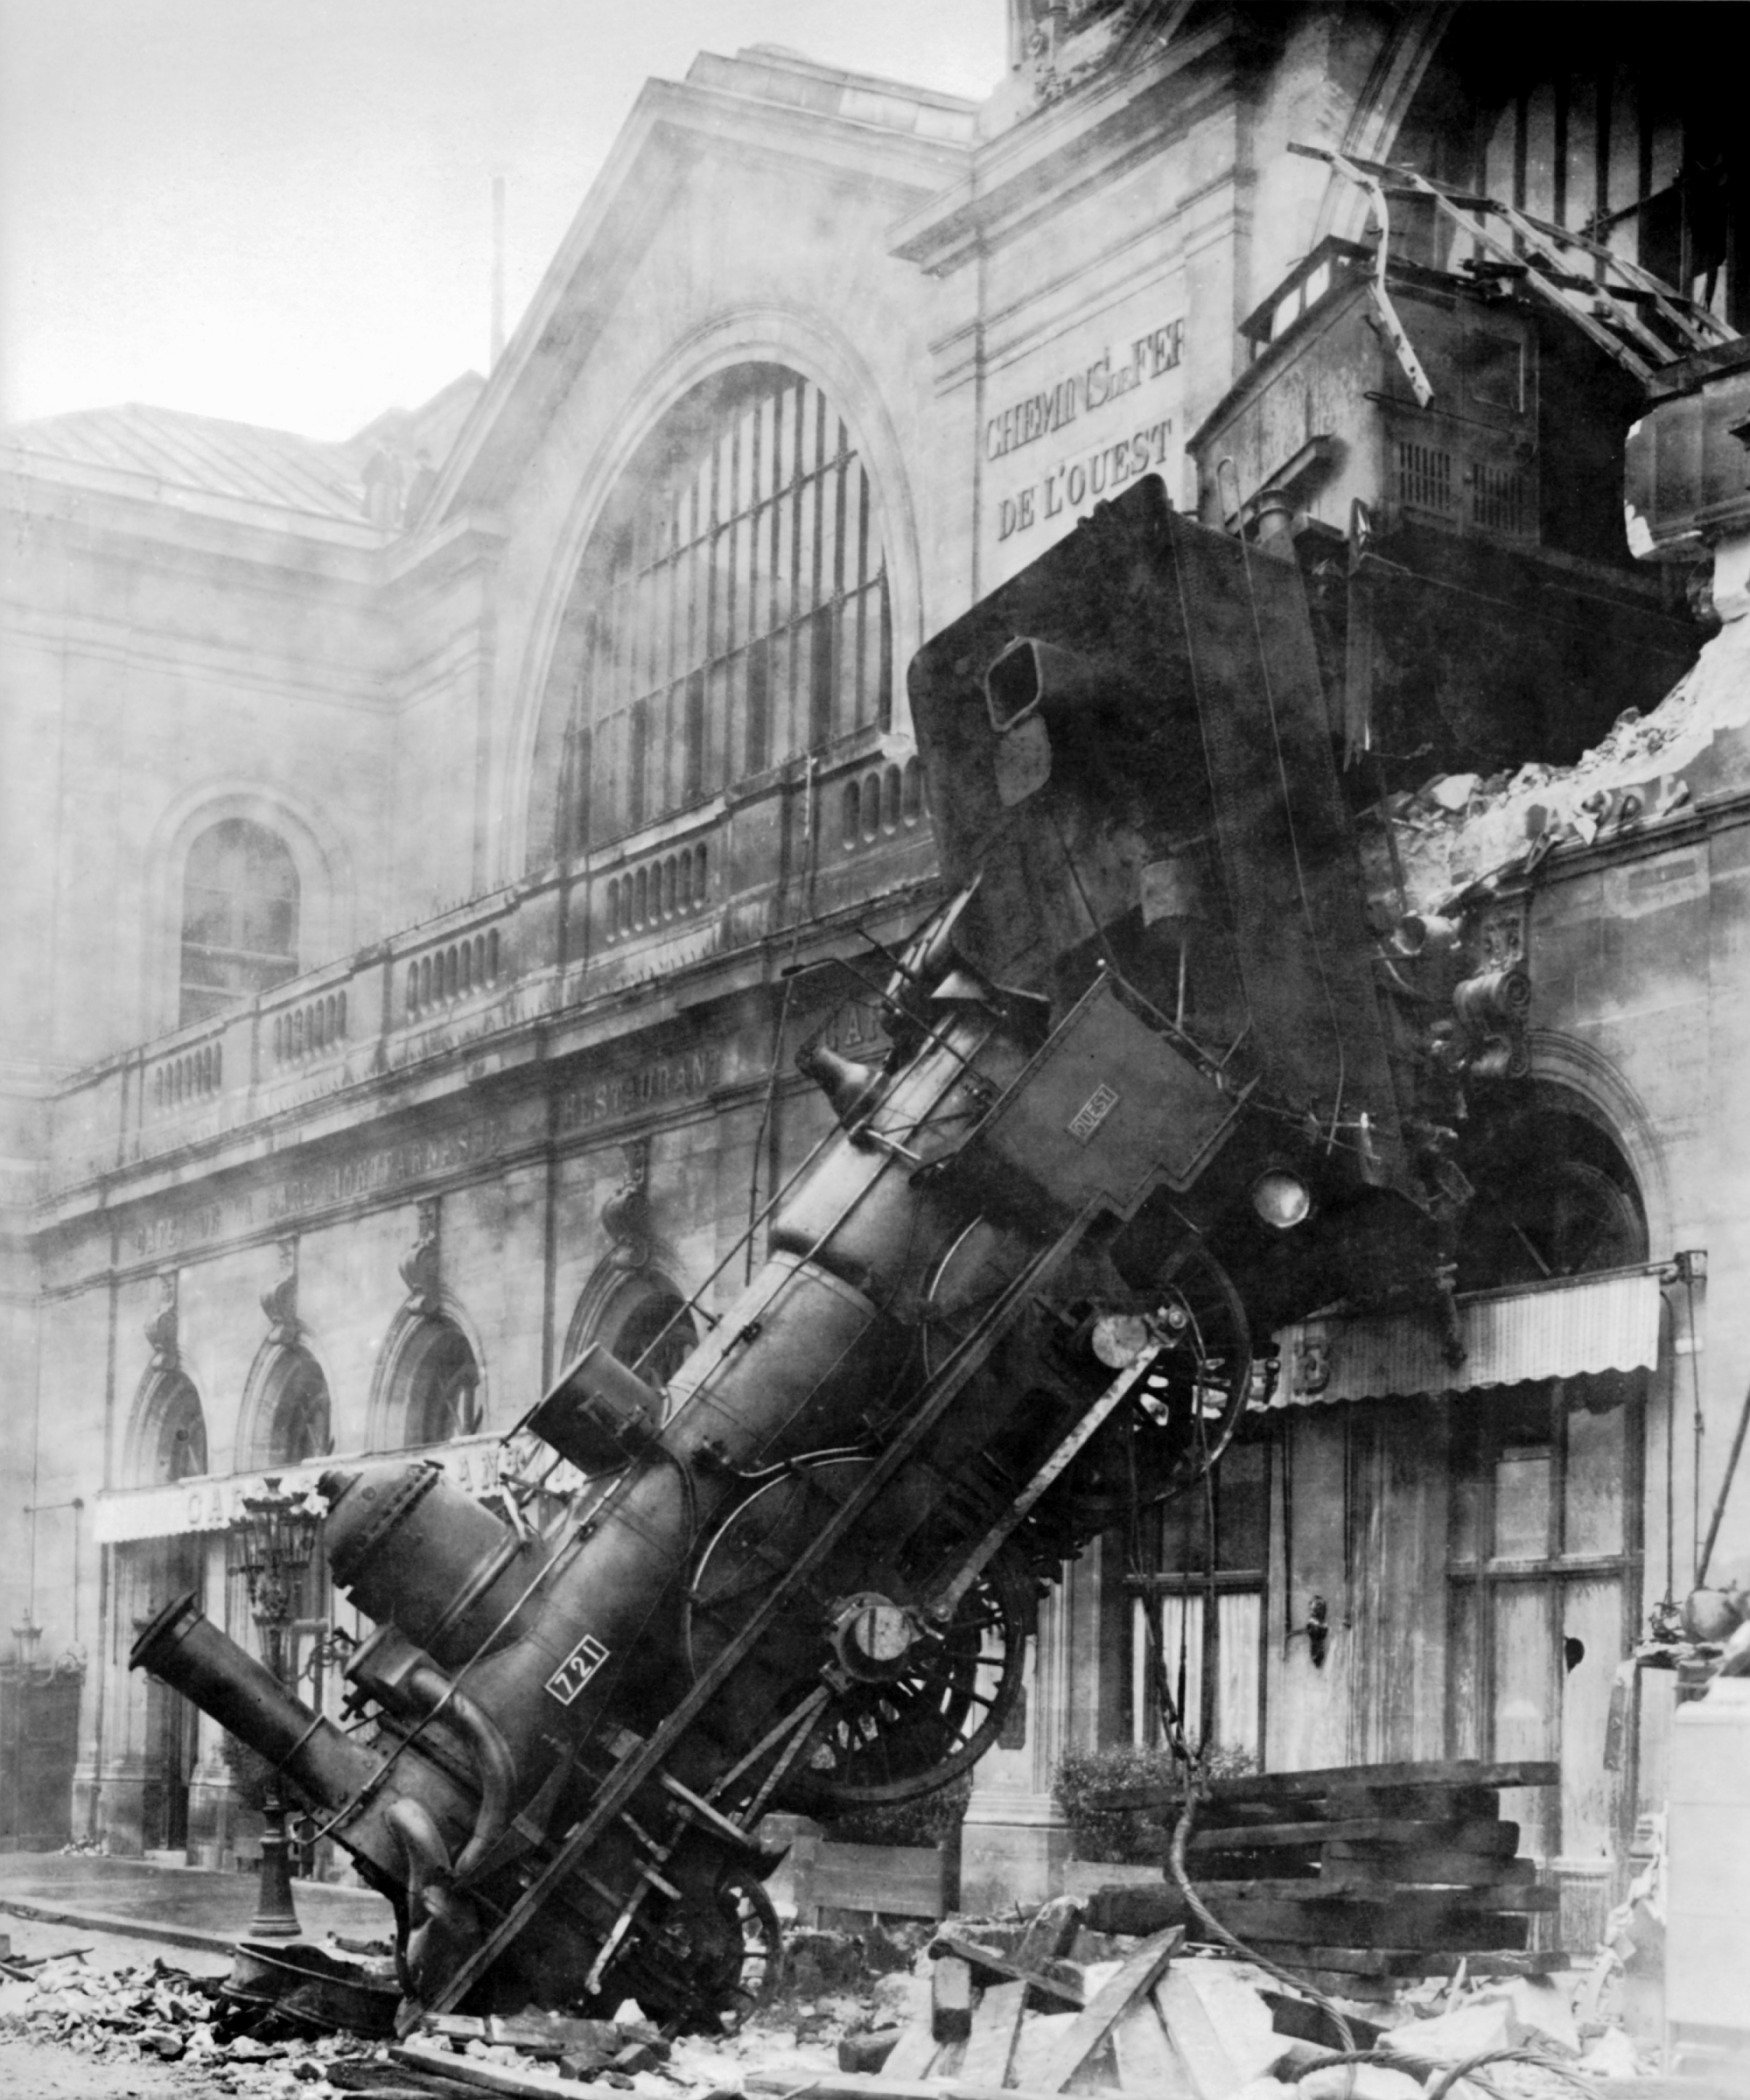 http://upload.wikimedia.org/wikipedia/commons/1/19/Train_wreck_at_Montparnasse_1895.jpg